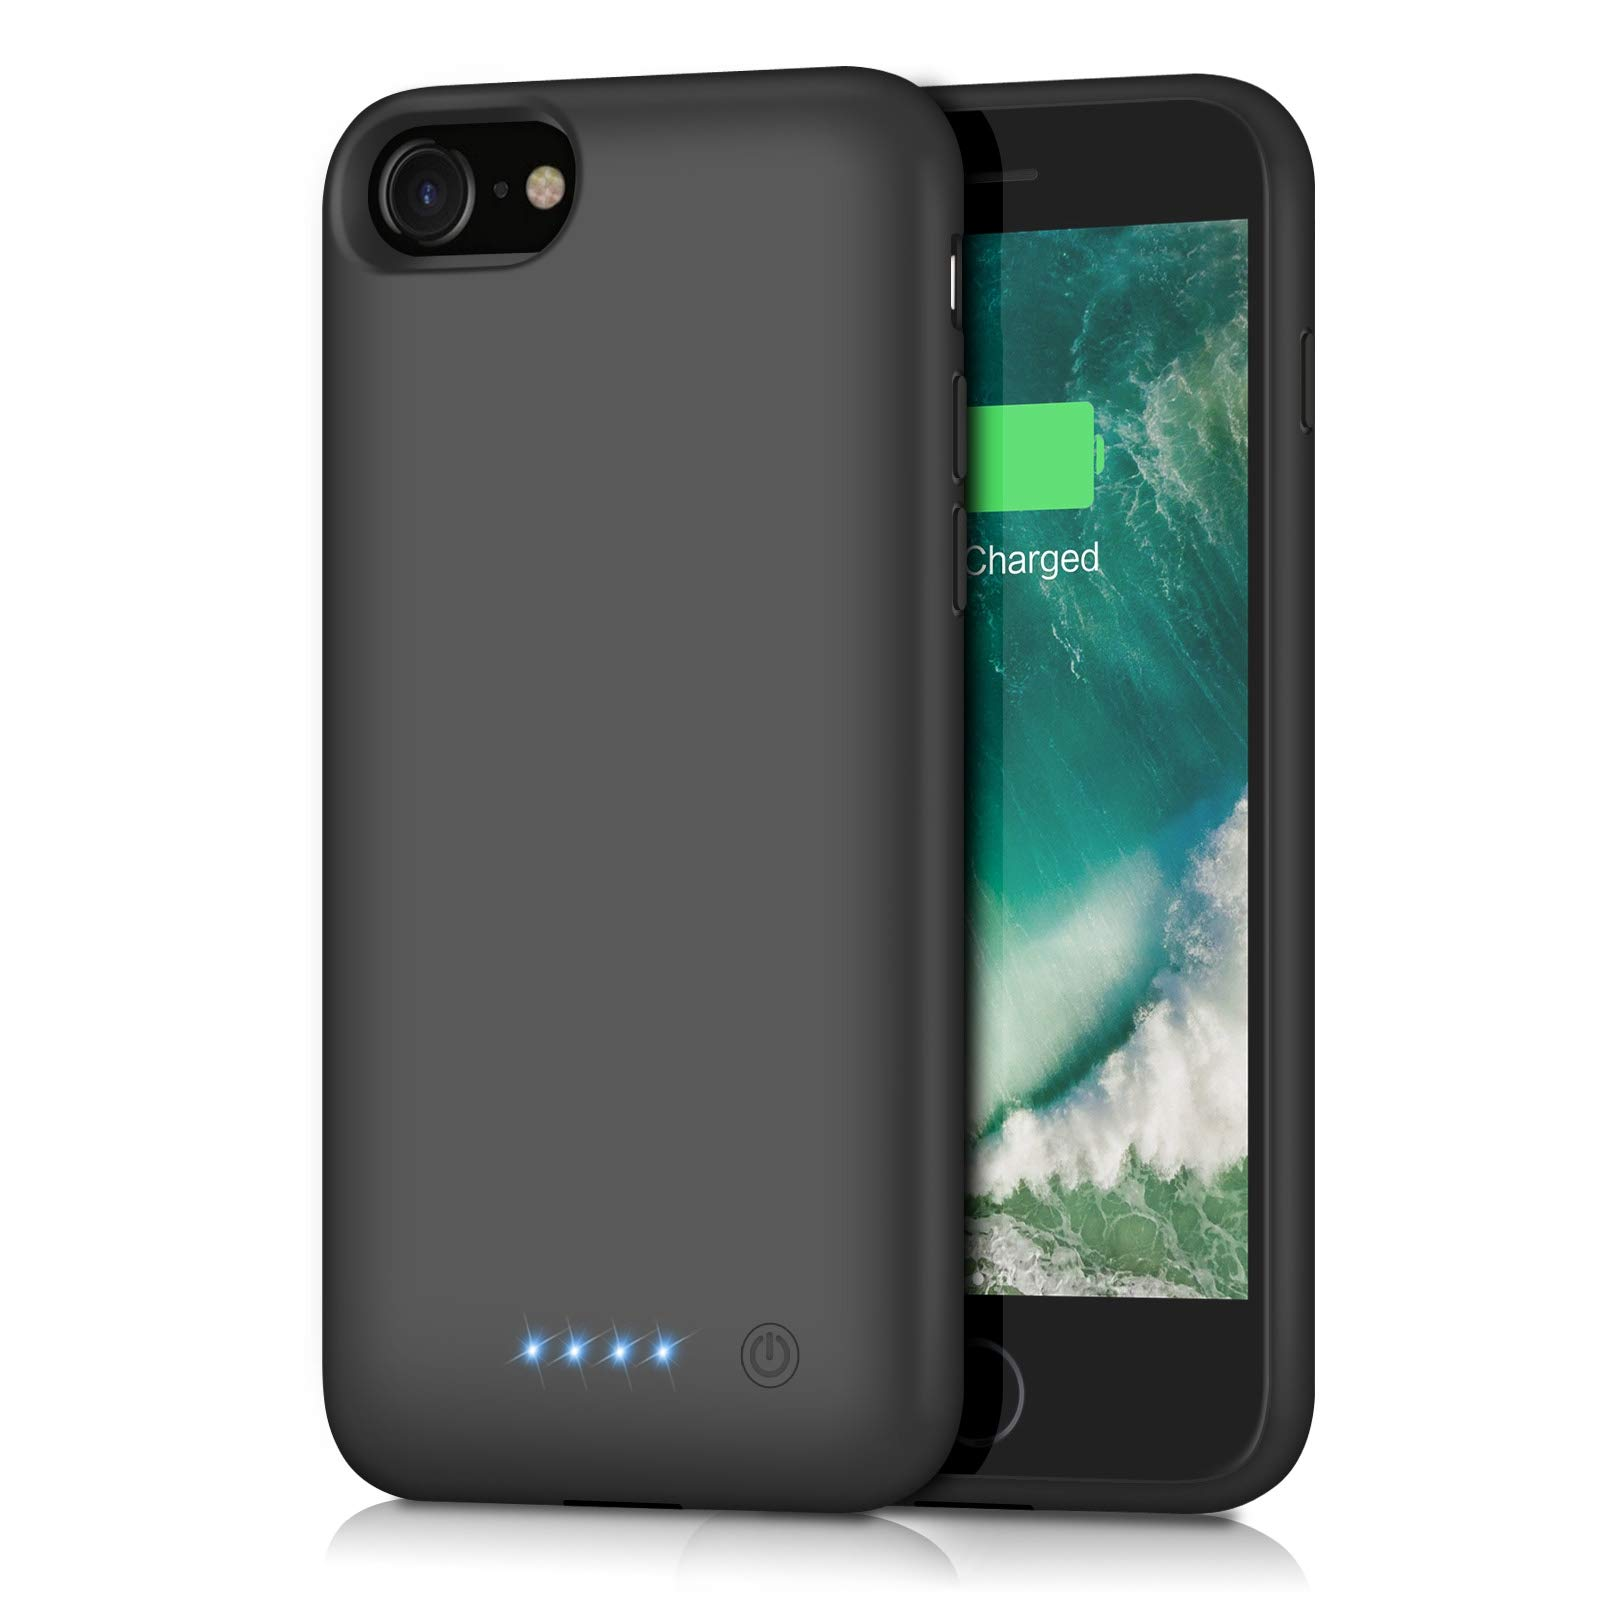 7 BioRing Battery Case for iPhone 8 6S Black, iPhone 6 7 8//4.7 6 // Plus with 5000 mAh Extended Battery Pack Light Weight Charge Case